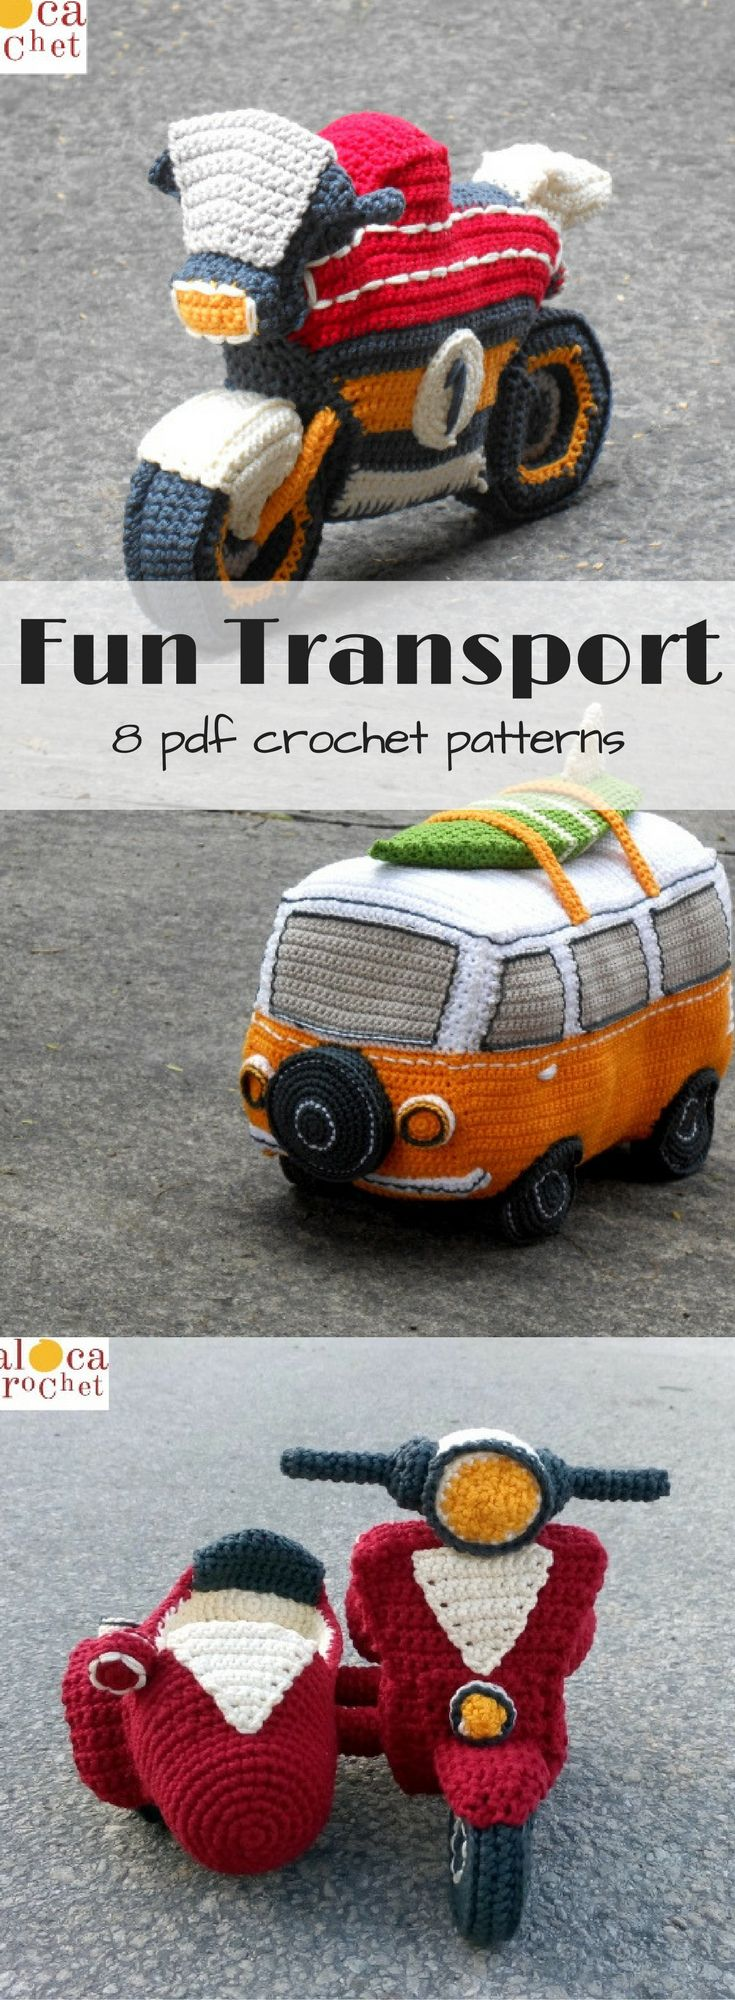 8 different car, motorcycle, & trailer amigurumi crochet patterns! How unique are these?! #etsy #ad #toy